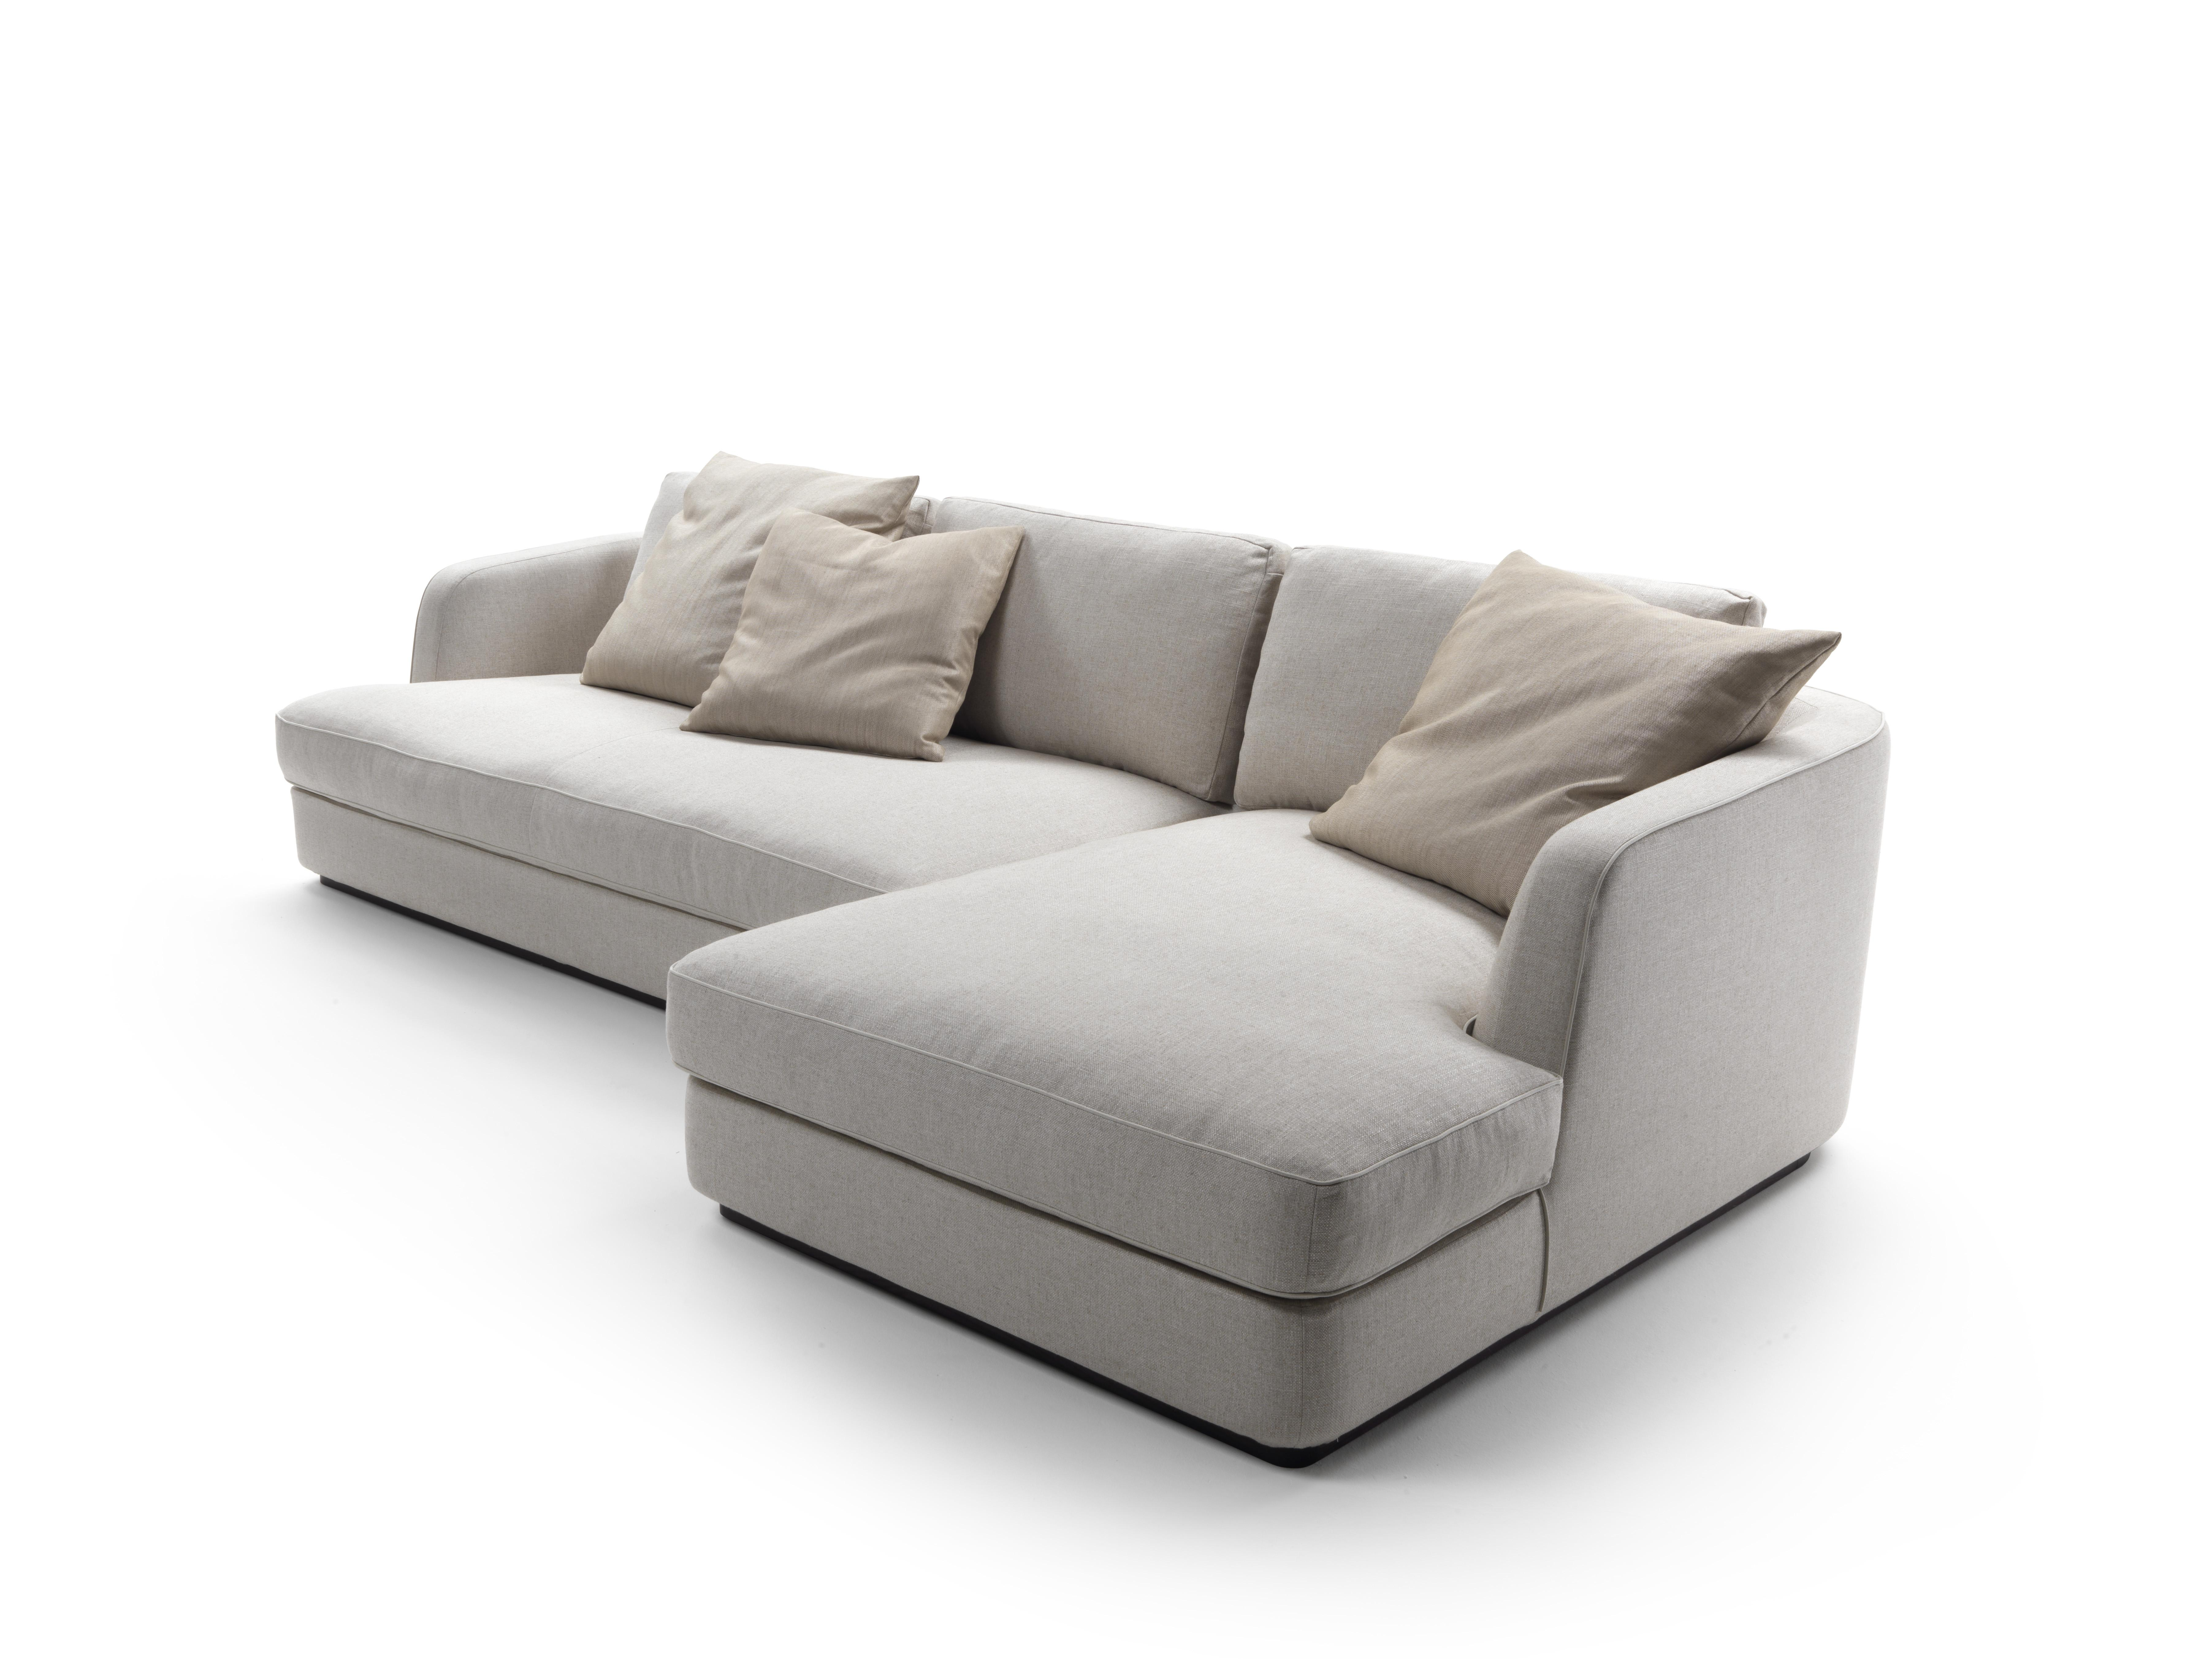 Barret Modular Sofa Fanuli Furniture